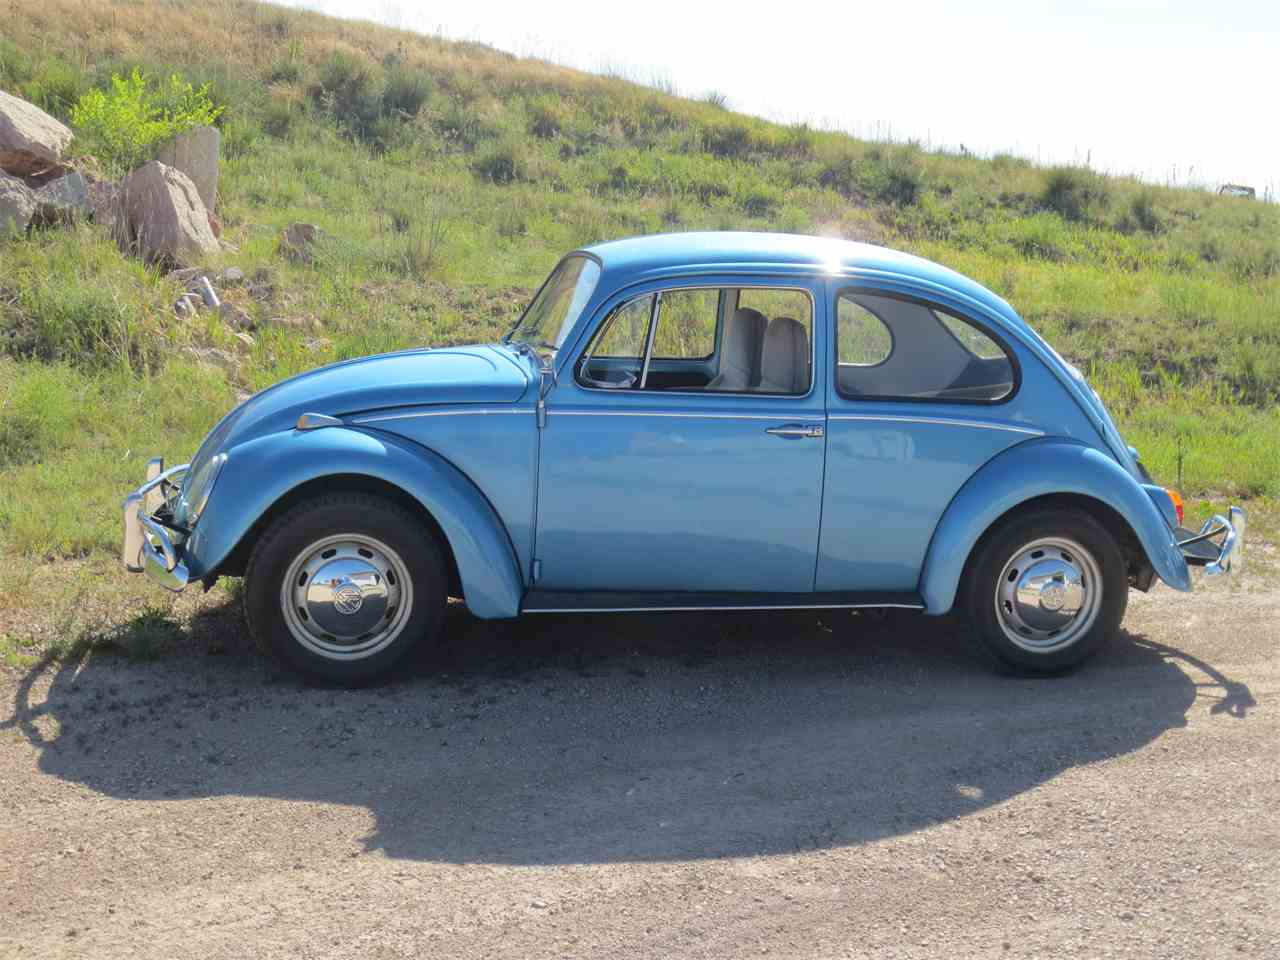 Large Picture of '64 Volkswagen Beetle located in Colorado - $6,900.00 - LRER